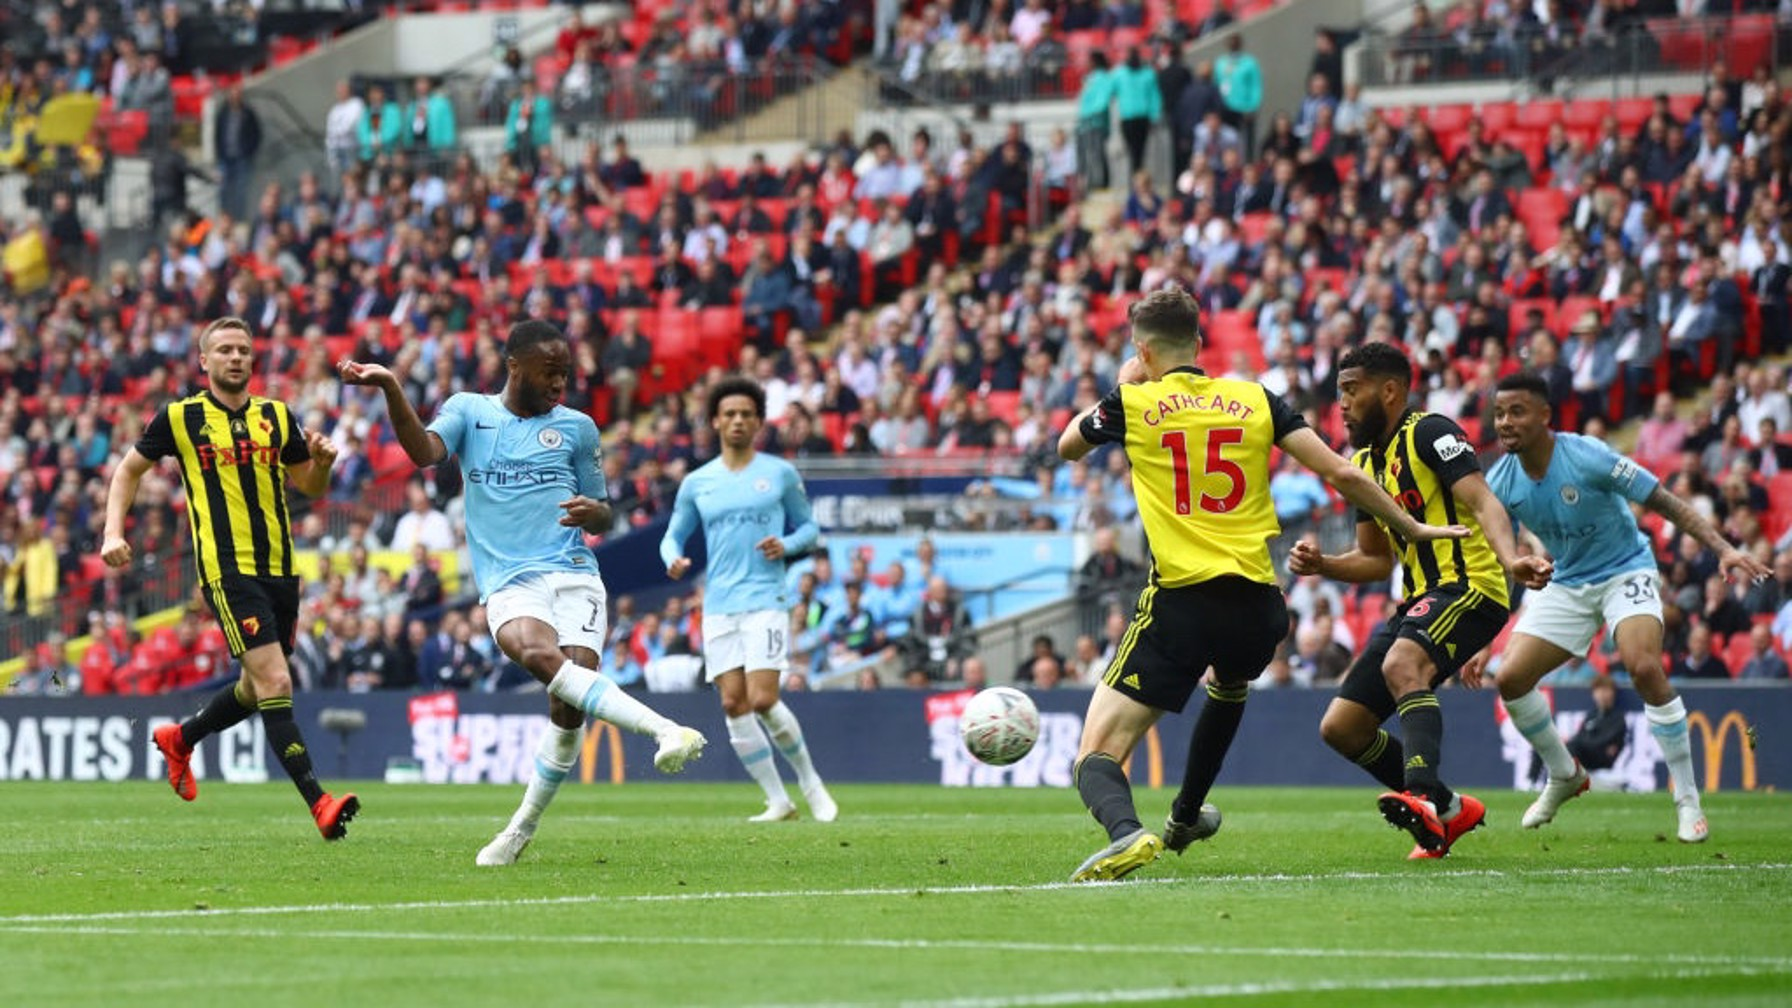 SIX OF THE BEST: Sterling gets a second for him, and a sixth for City - a record in an FA Cup final at the new Wembley